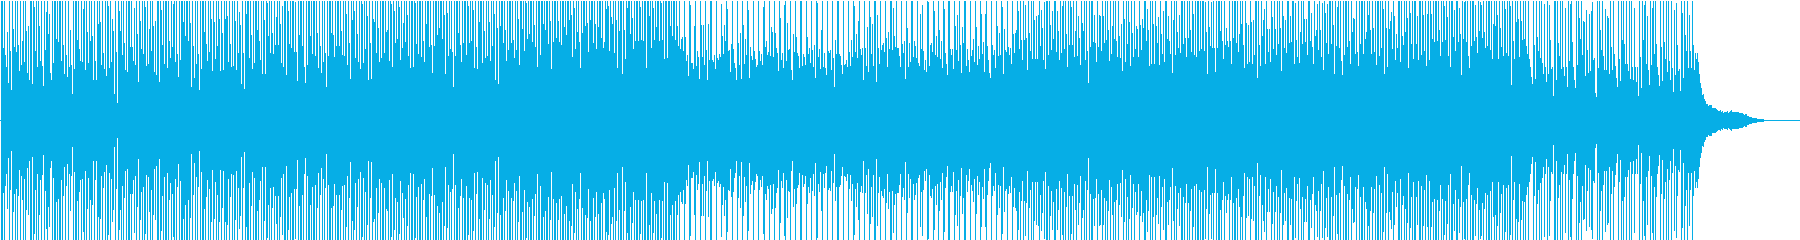 Introducing a corporate VP company Transparent and refreshing feeling's reproduced waveform